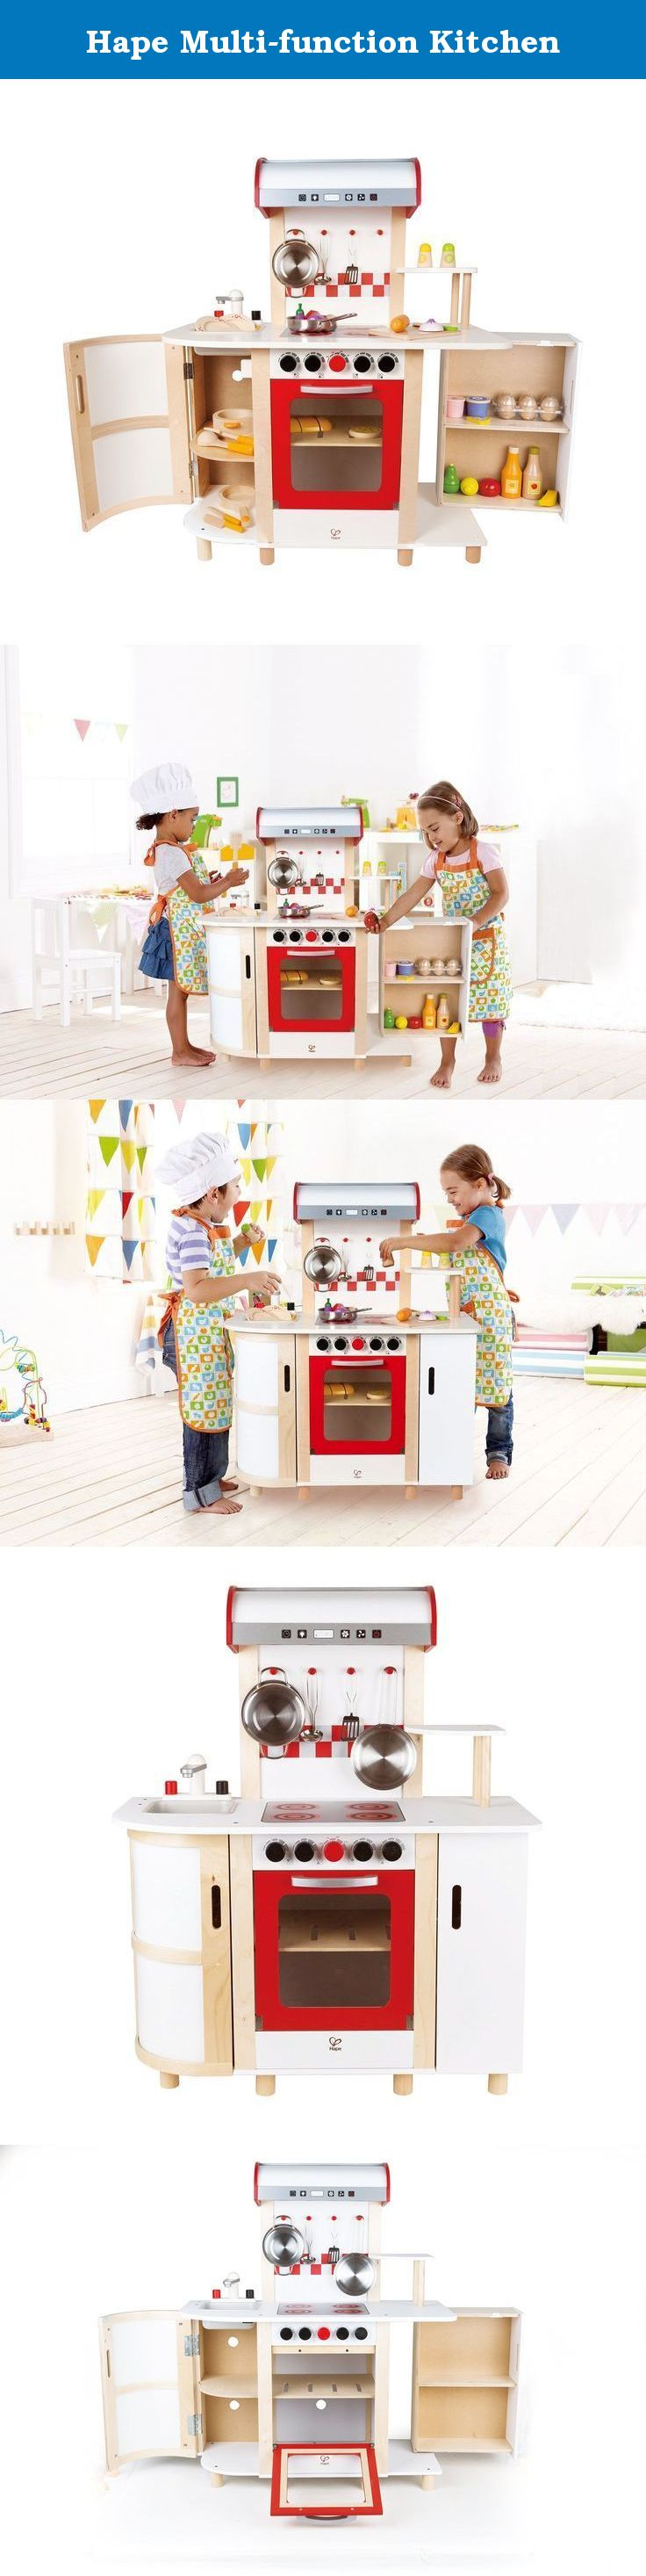 Hape Multi-function Kitchen. Find out what\'s cooking in this multi ...